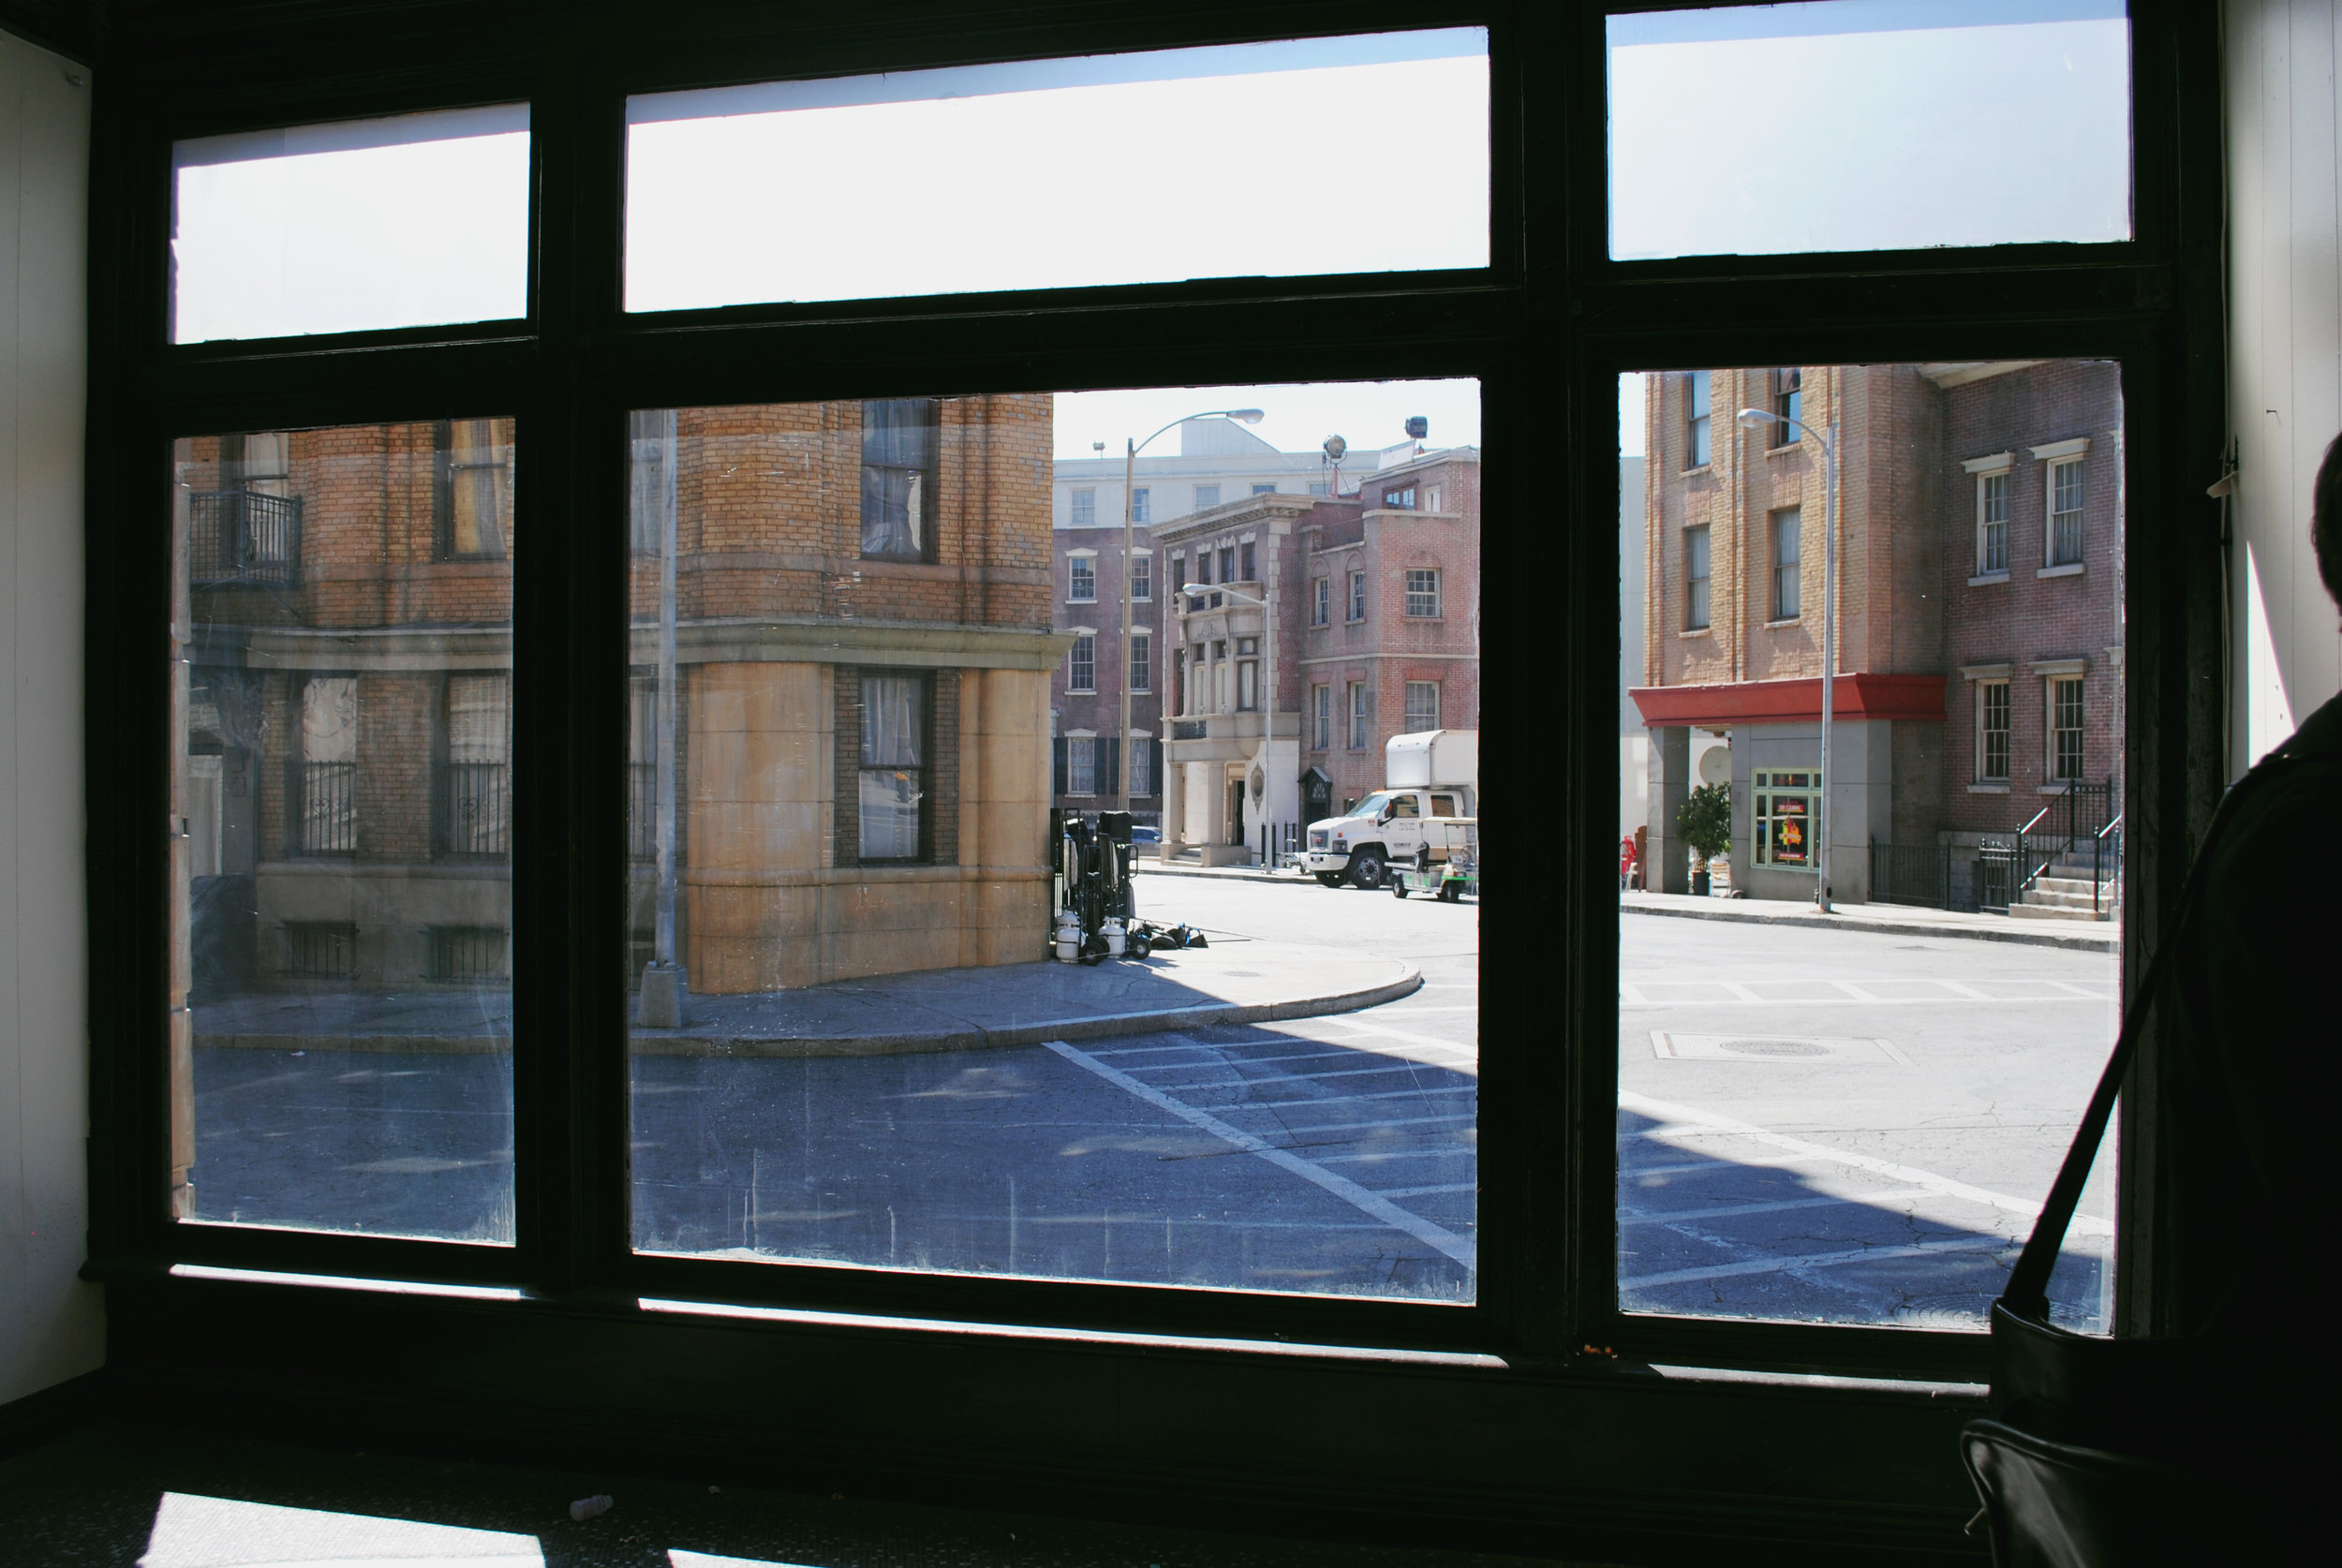 Looking-out-of-Cupcake-Shop-from-Castle-at-Paramount-by-Live-the-Movies.jpg